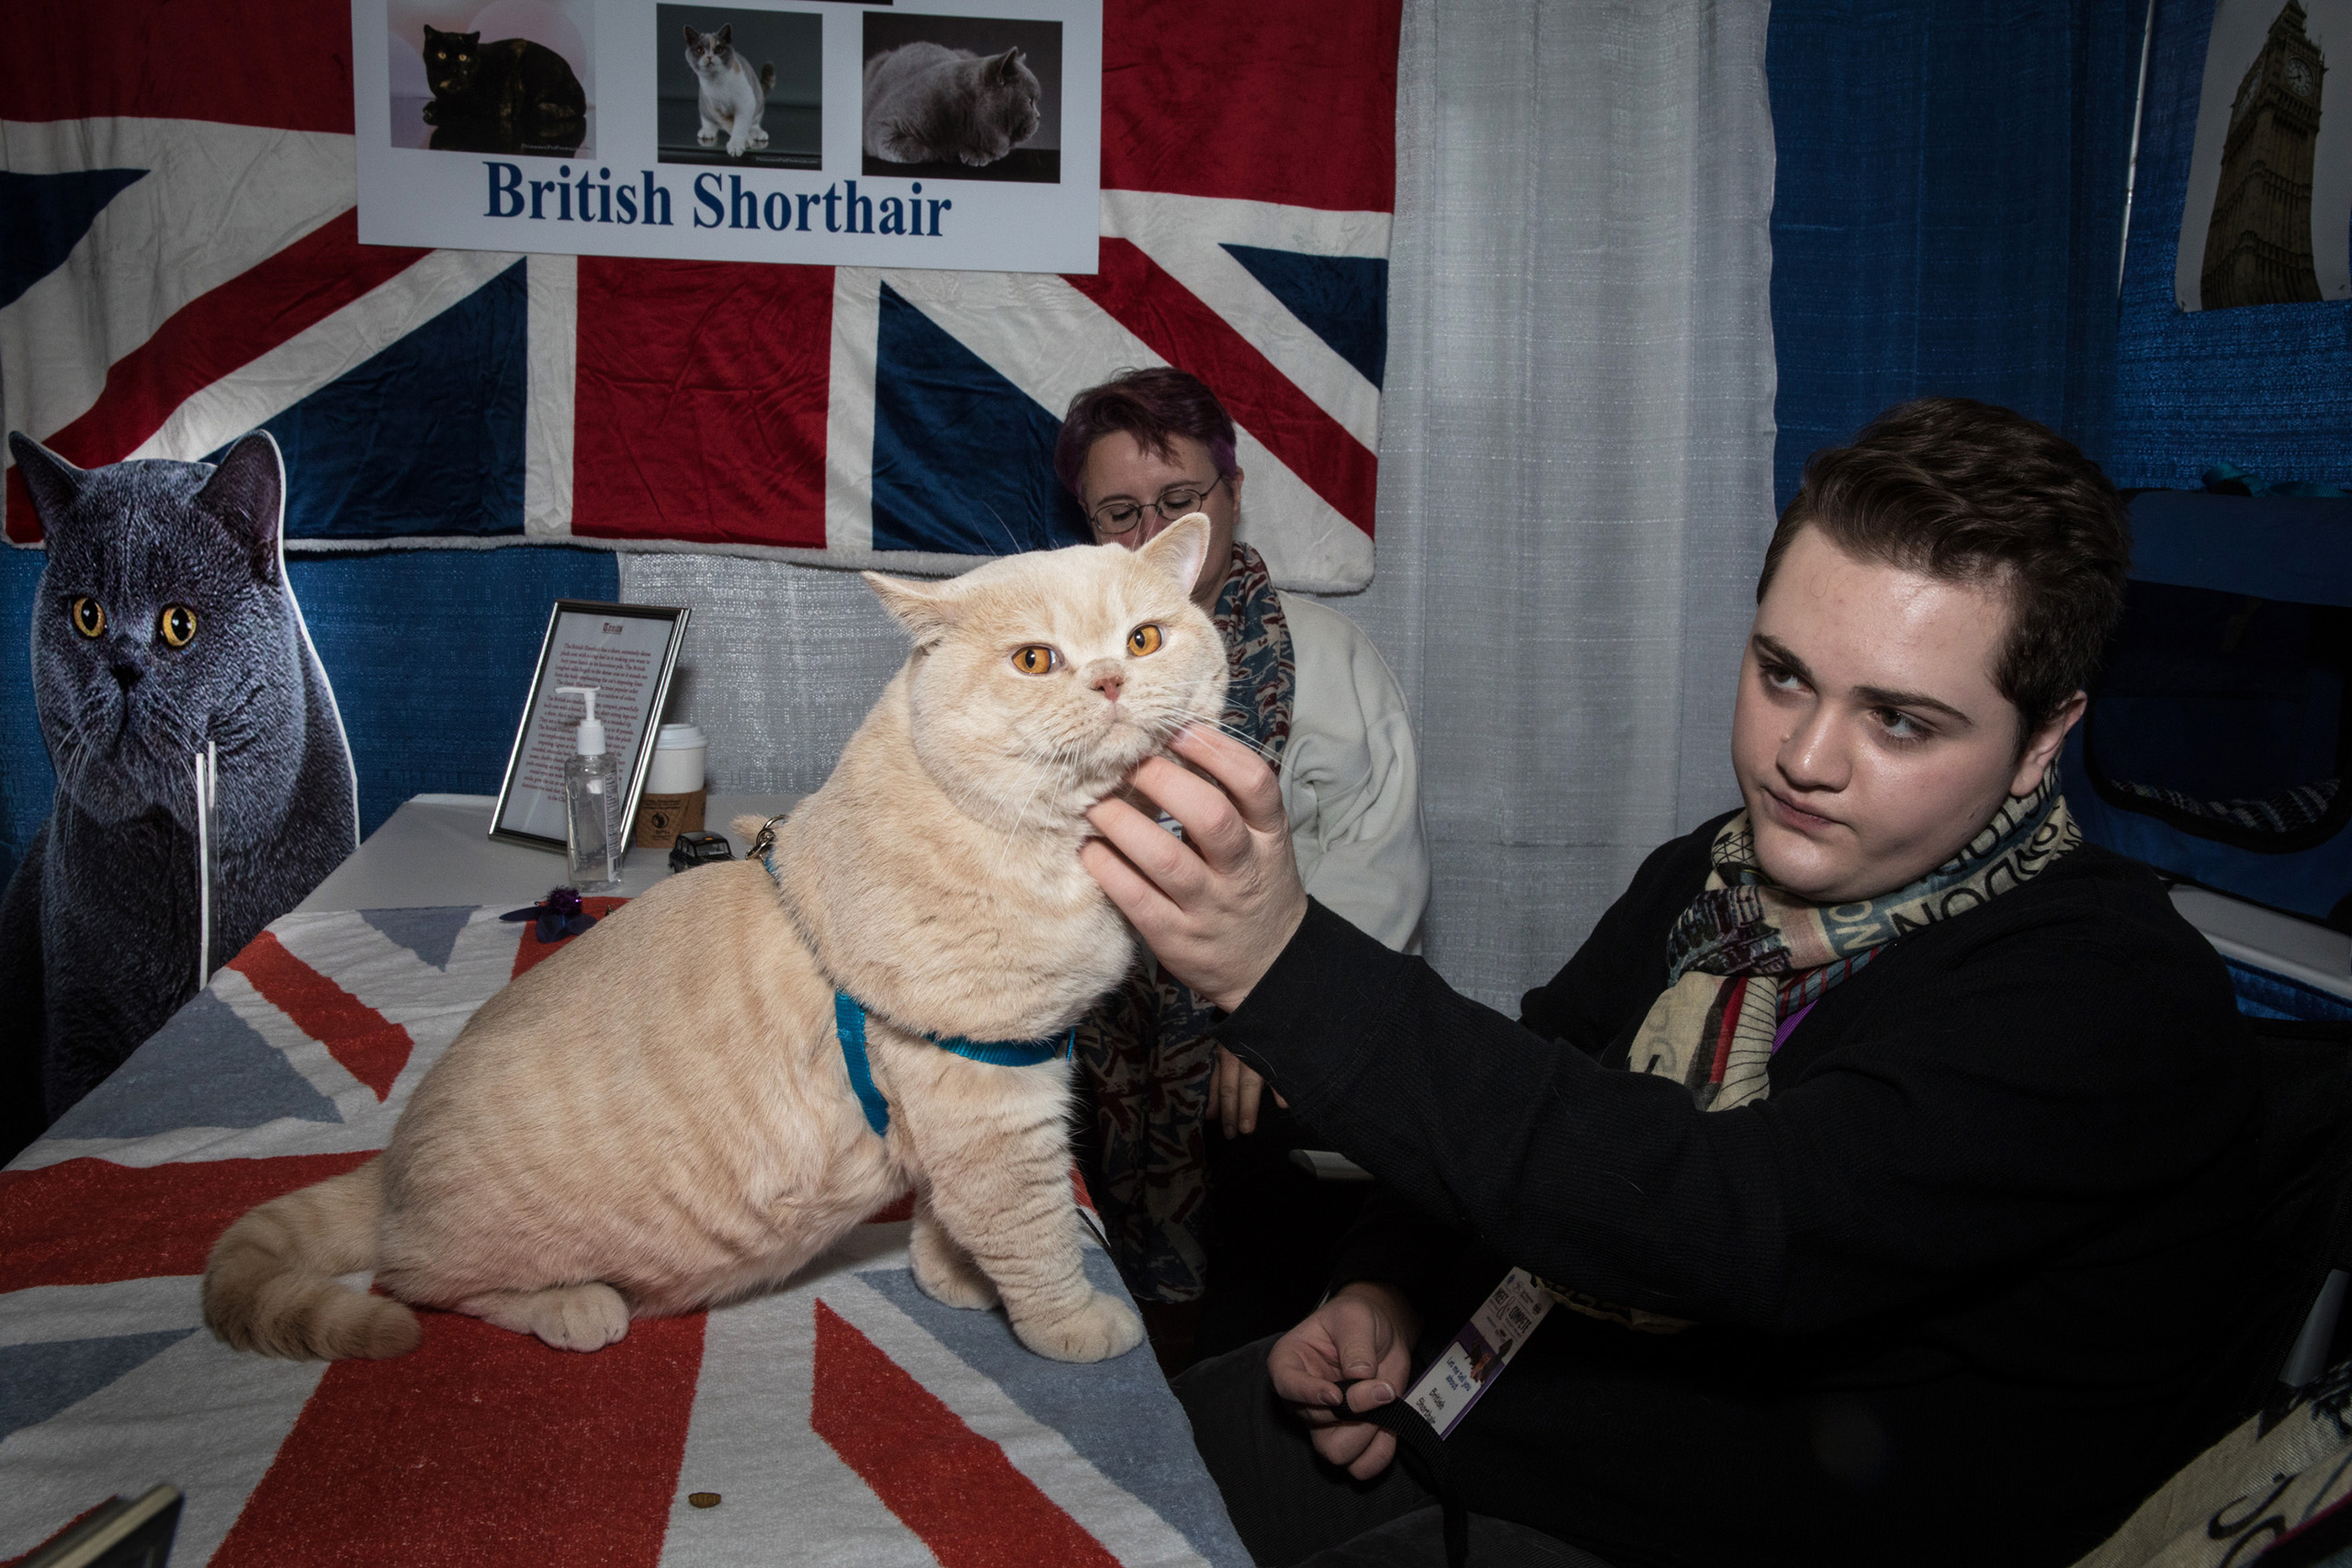 British shorthair, Toby, with owner Micah Silver at the American Kennel Club's Meet the Breeds event on Feb. 11, 2017.